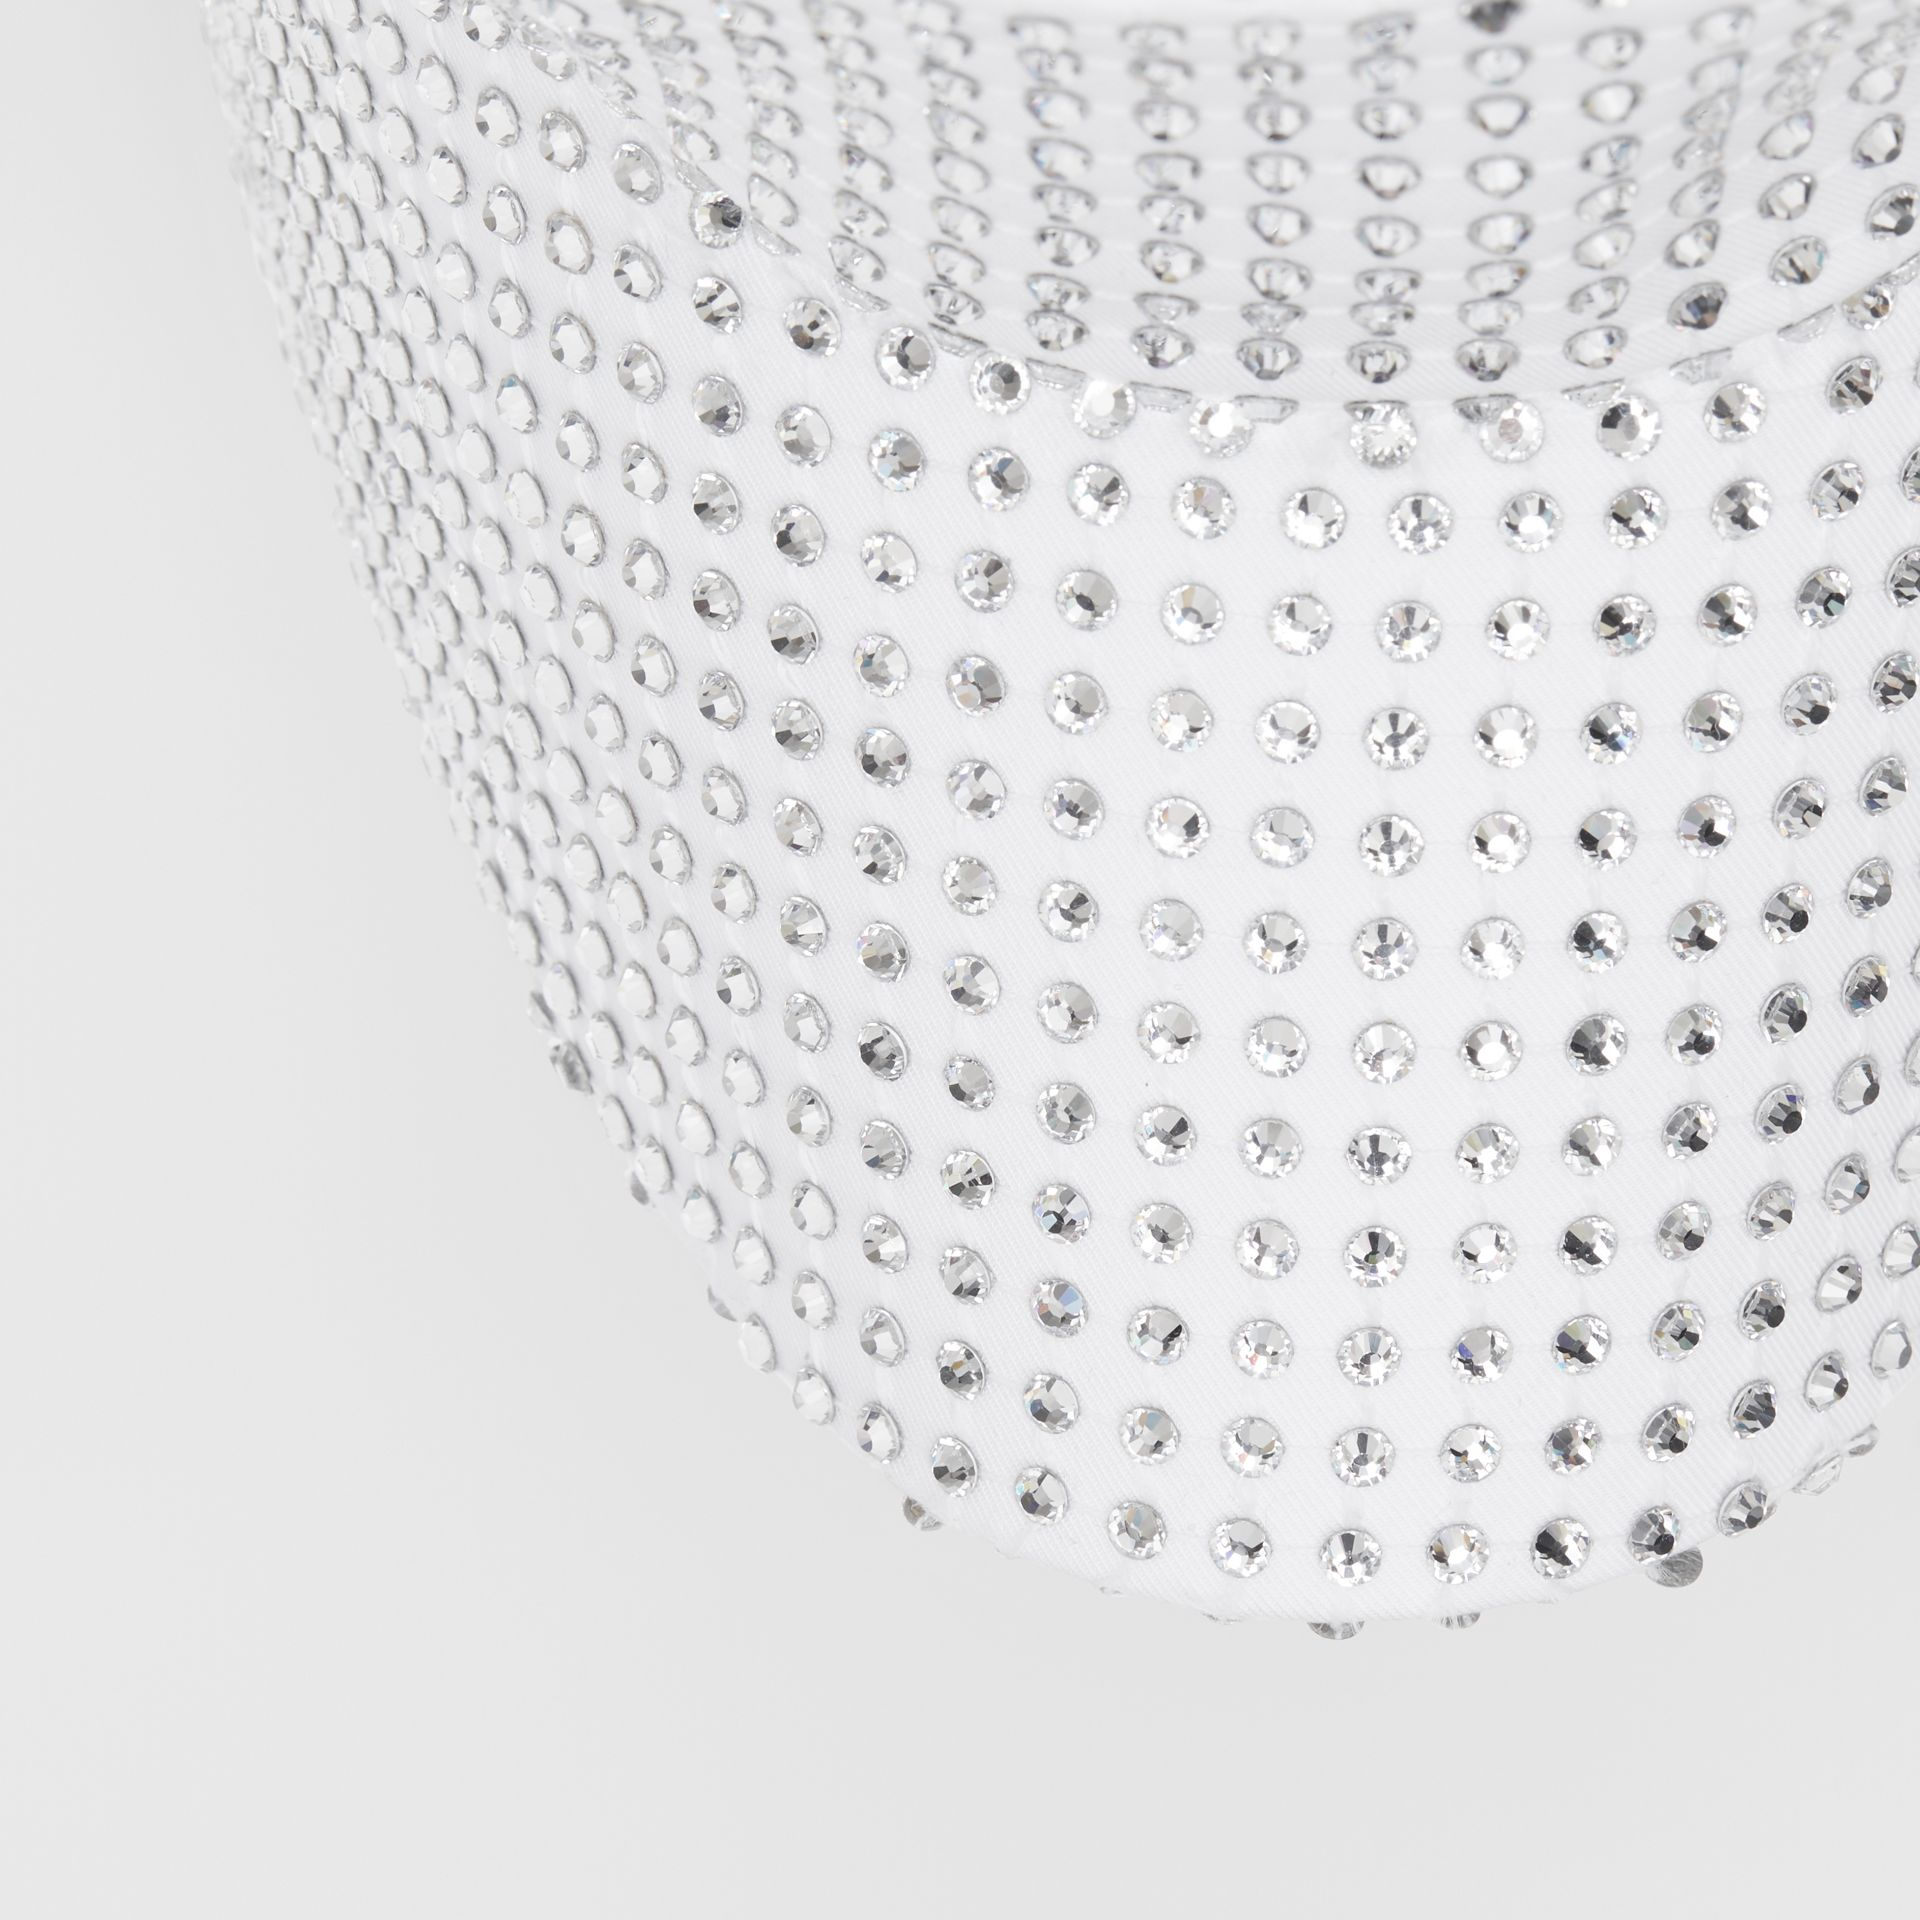 Crystal Mesh Detail Cotton Bonnet Cap in Optic White | Burberry - gallery image 1